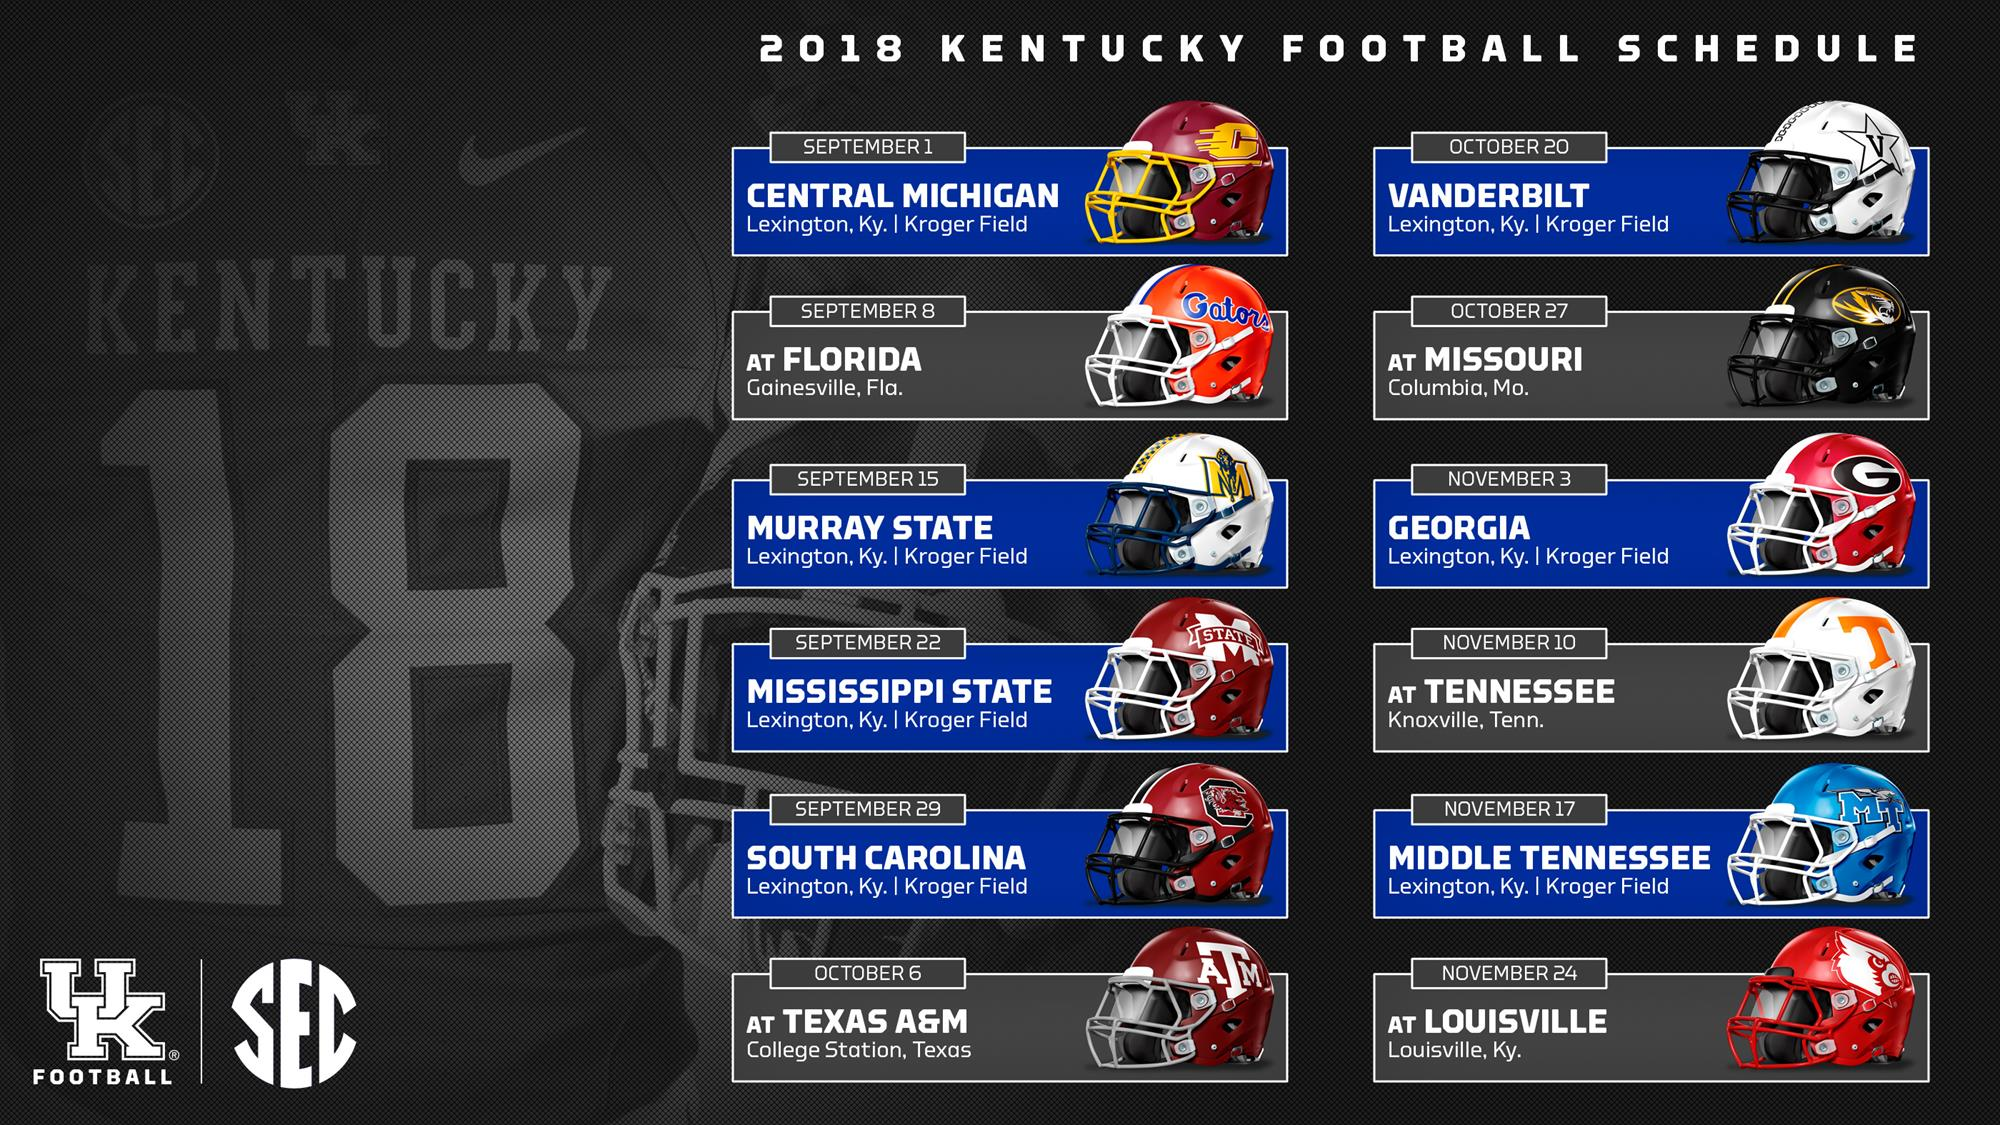 2017 2018 College Football Bowl Schedule >> Kentucky Wildcats Football 2018 Schedule, Dates, Locations Announced - A Sea Of Blue